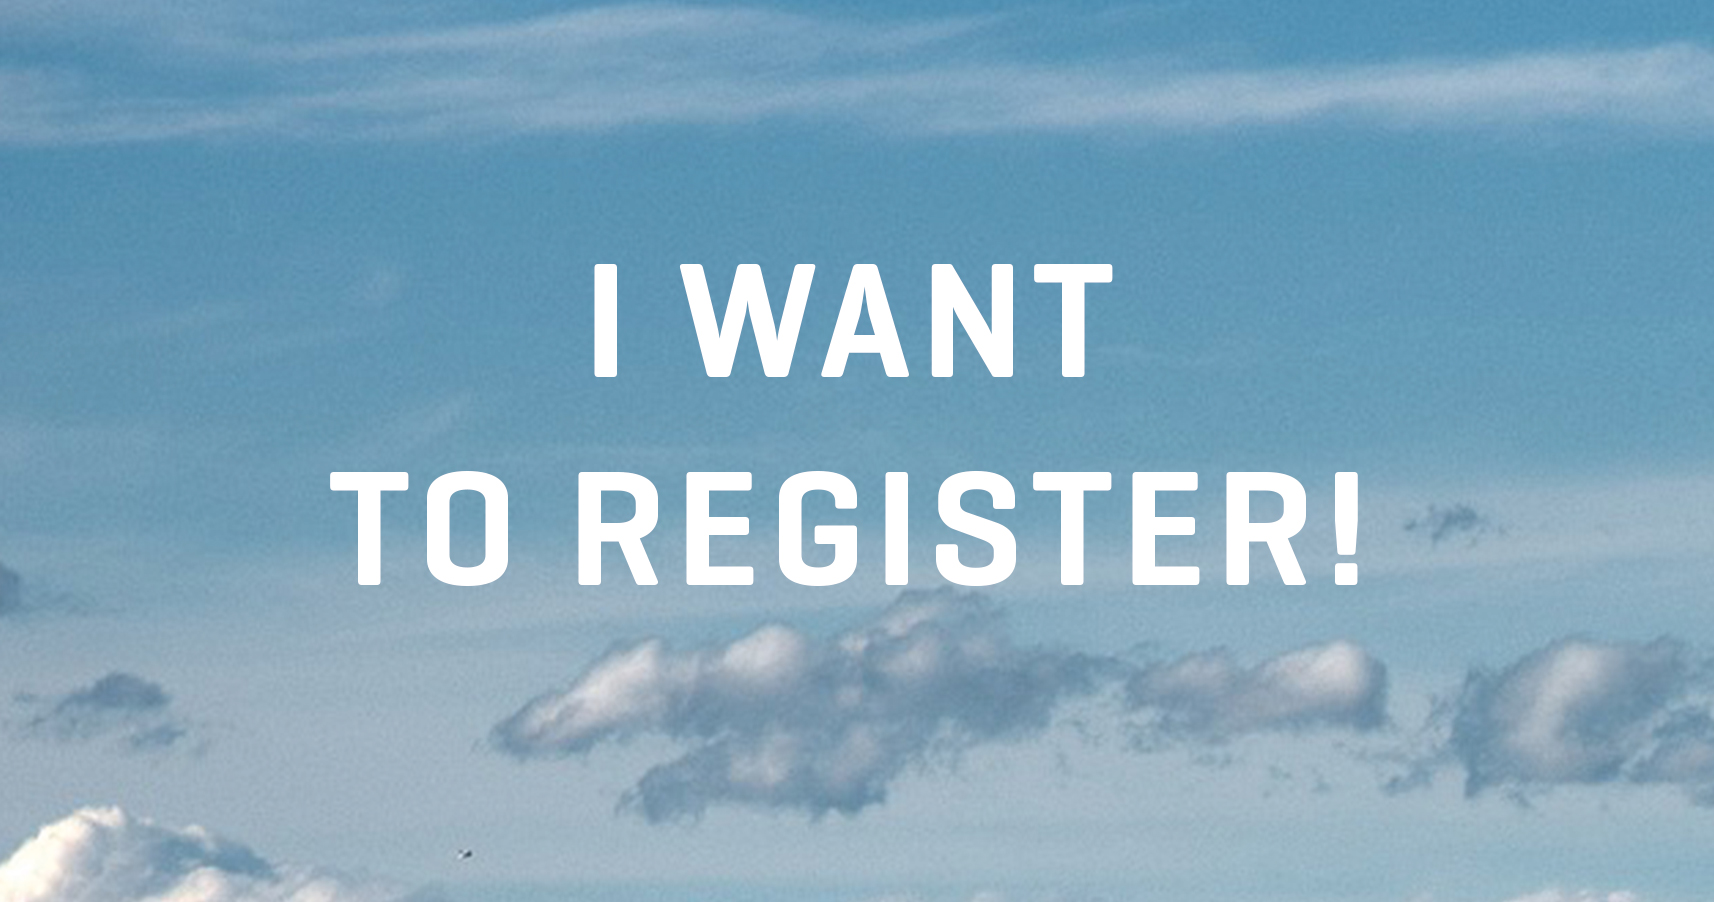 I-want-to-register.jpg